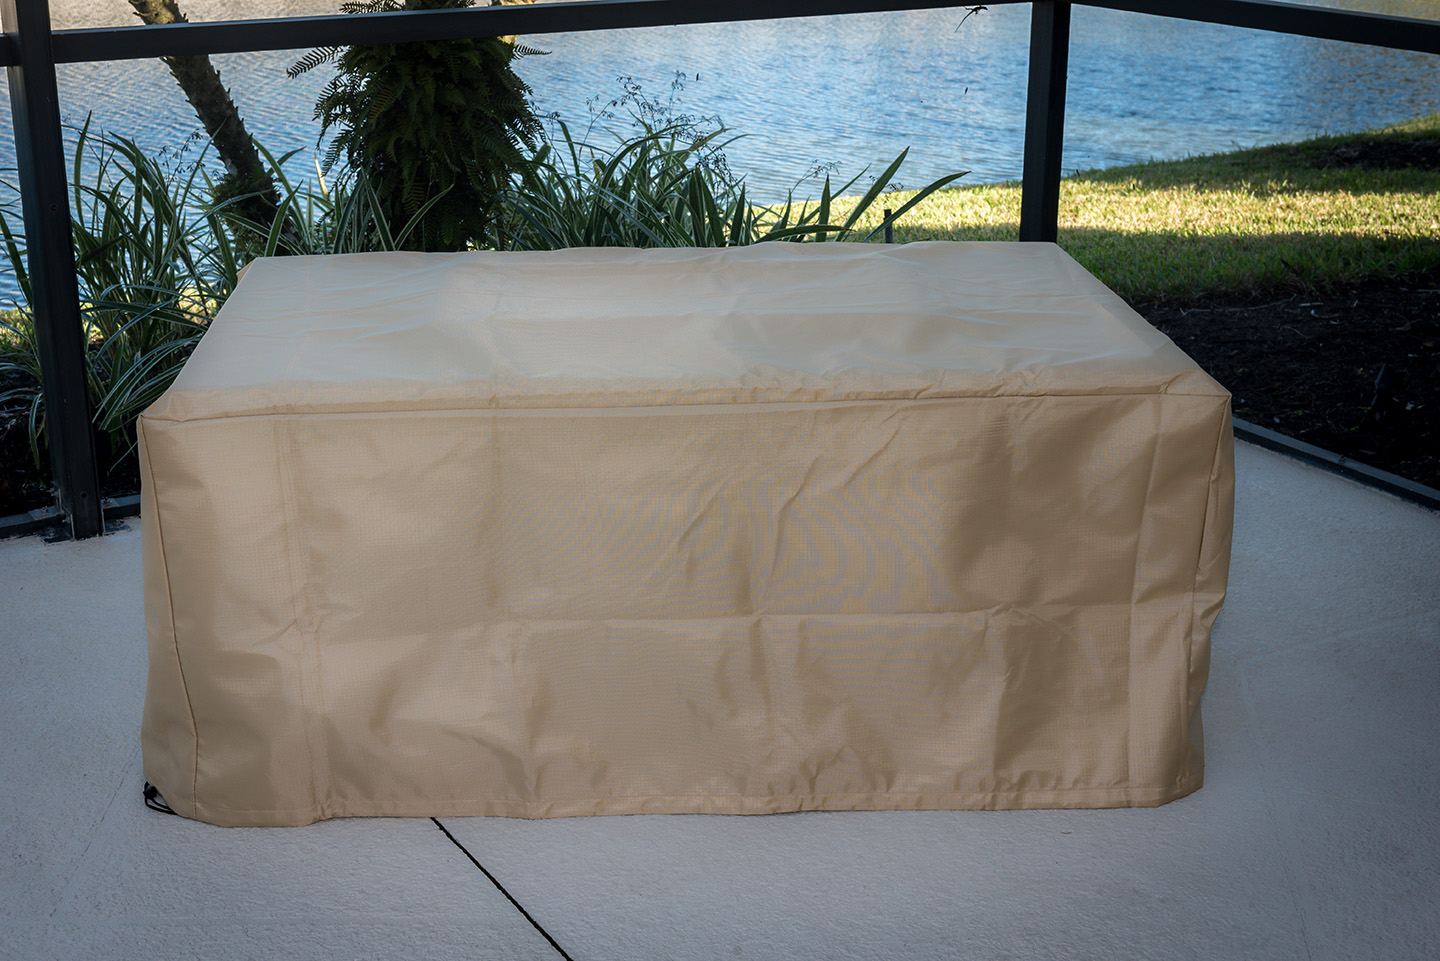 Protective Cover For Alcott Naples Rectangular Napa